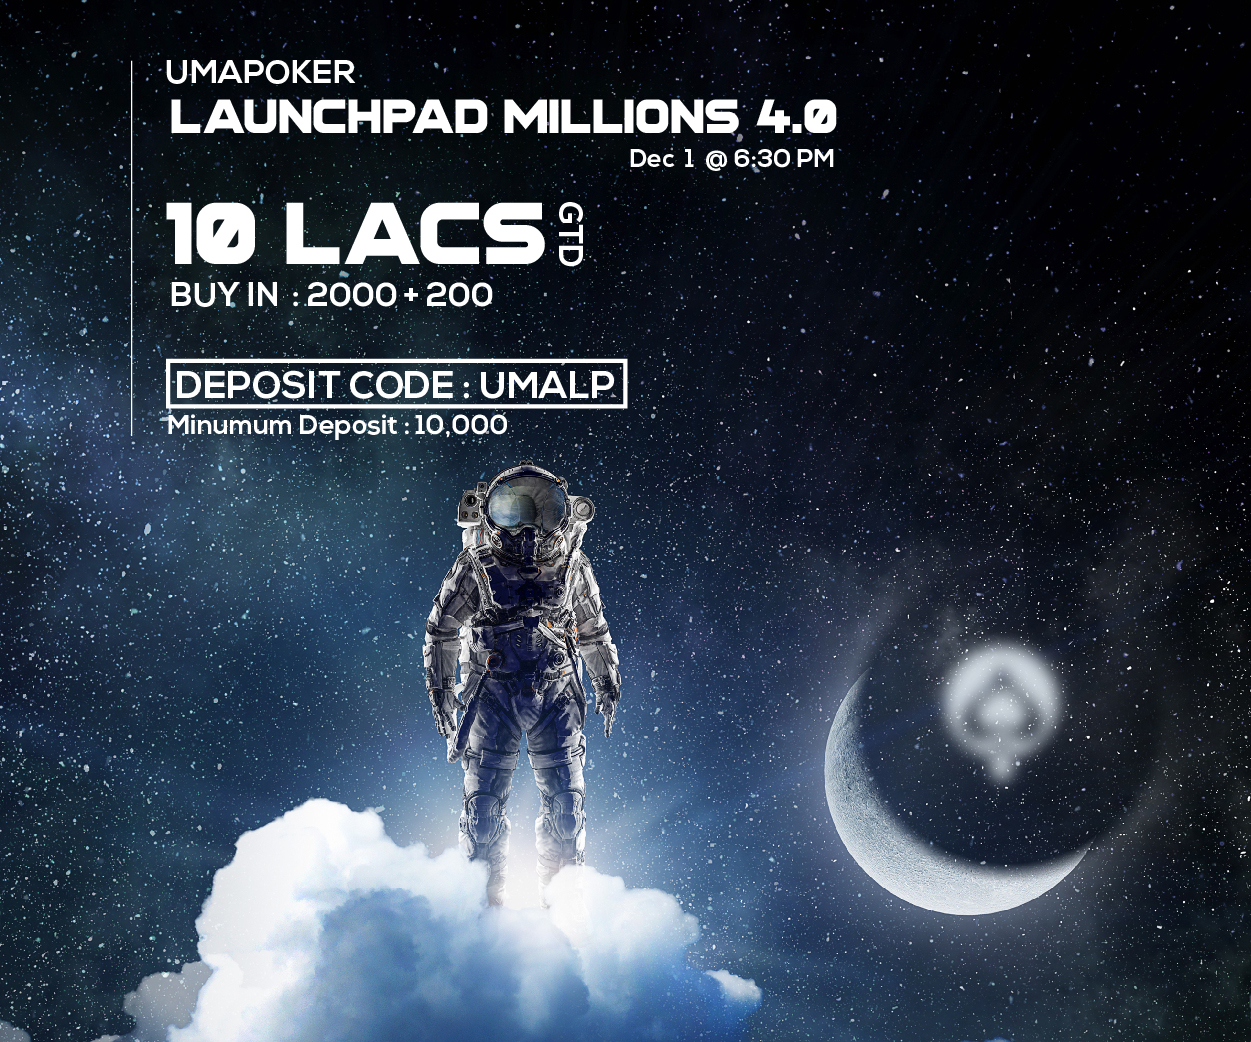 Uma Poker presents Launchpad 4.0; online poker tournament in India